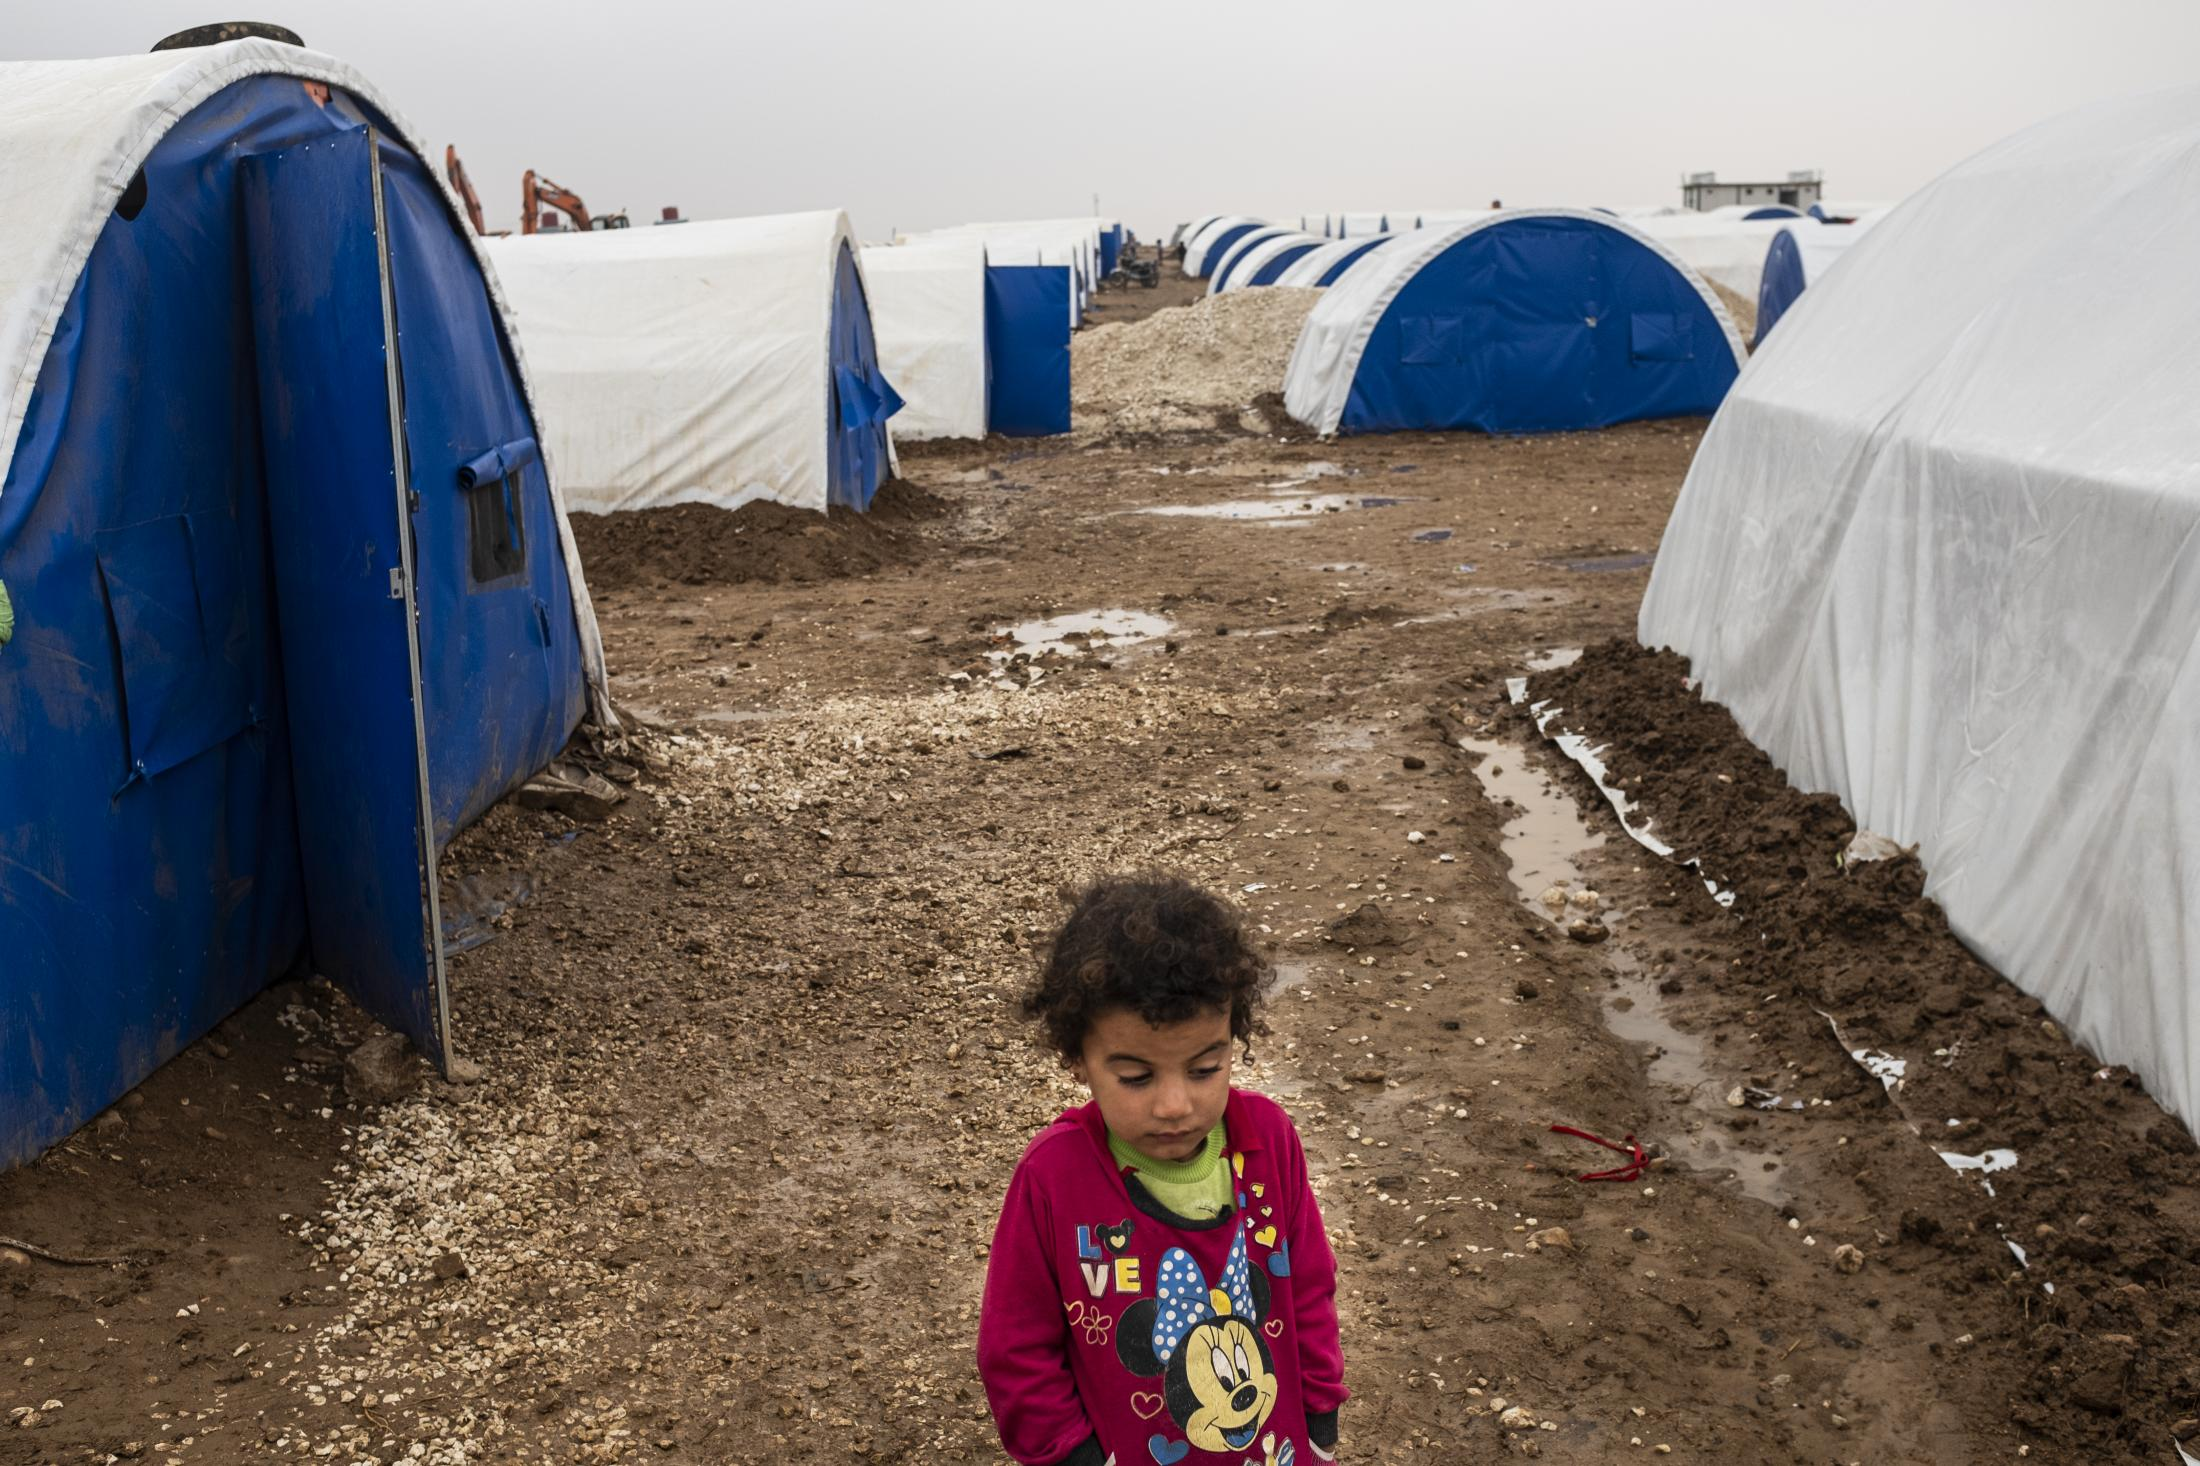 A girl outside her tent in the refugee camp of Washokani. After the withdrawal of US troops from northern Syria in October 2019, Turkey launched an offensive against the predominantly Kurdish areas in the northeast of the country along Islamist forces. Calls for war crimes investigations into the conduct of Ankara-backed militias are mounting ever since. (Andoni Lubaki / Euskal Fondoa)